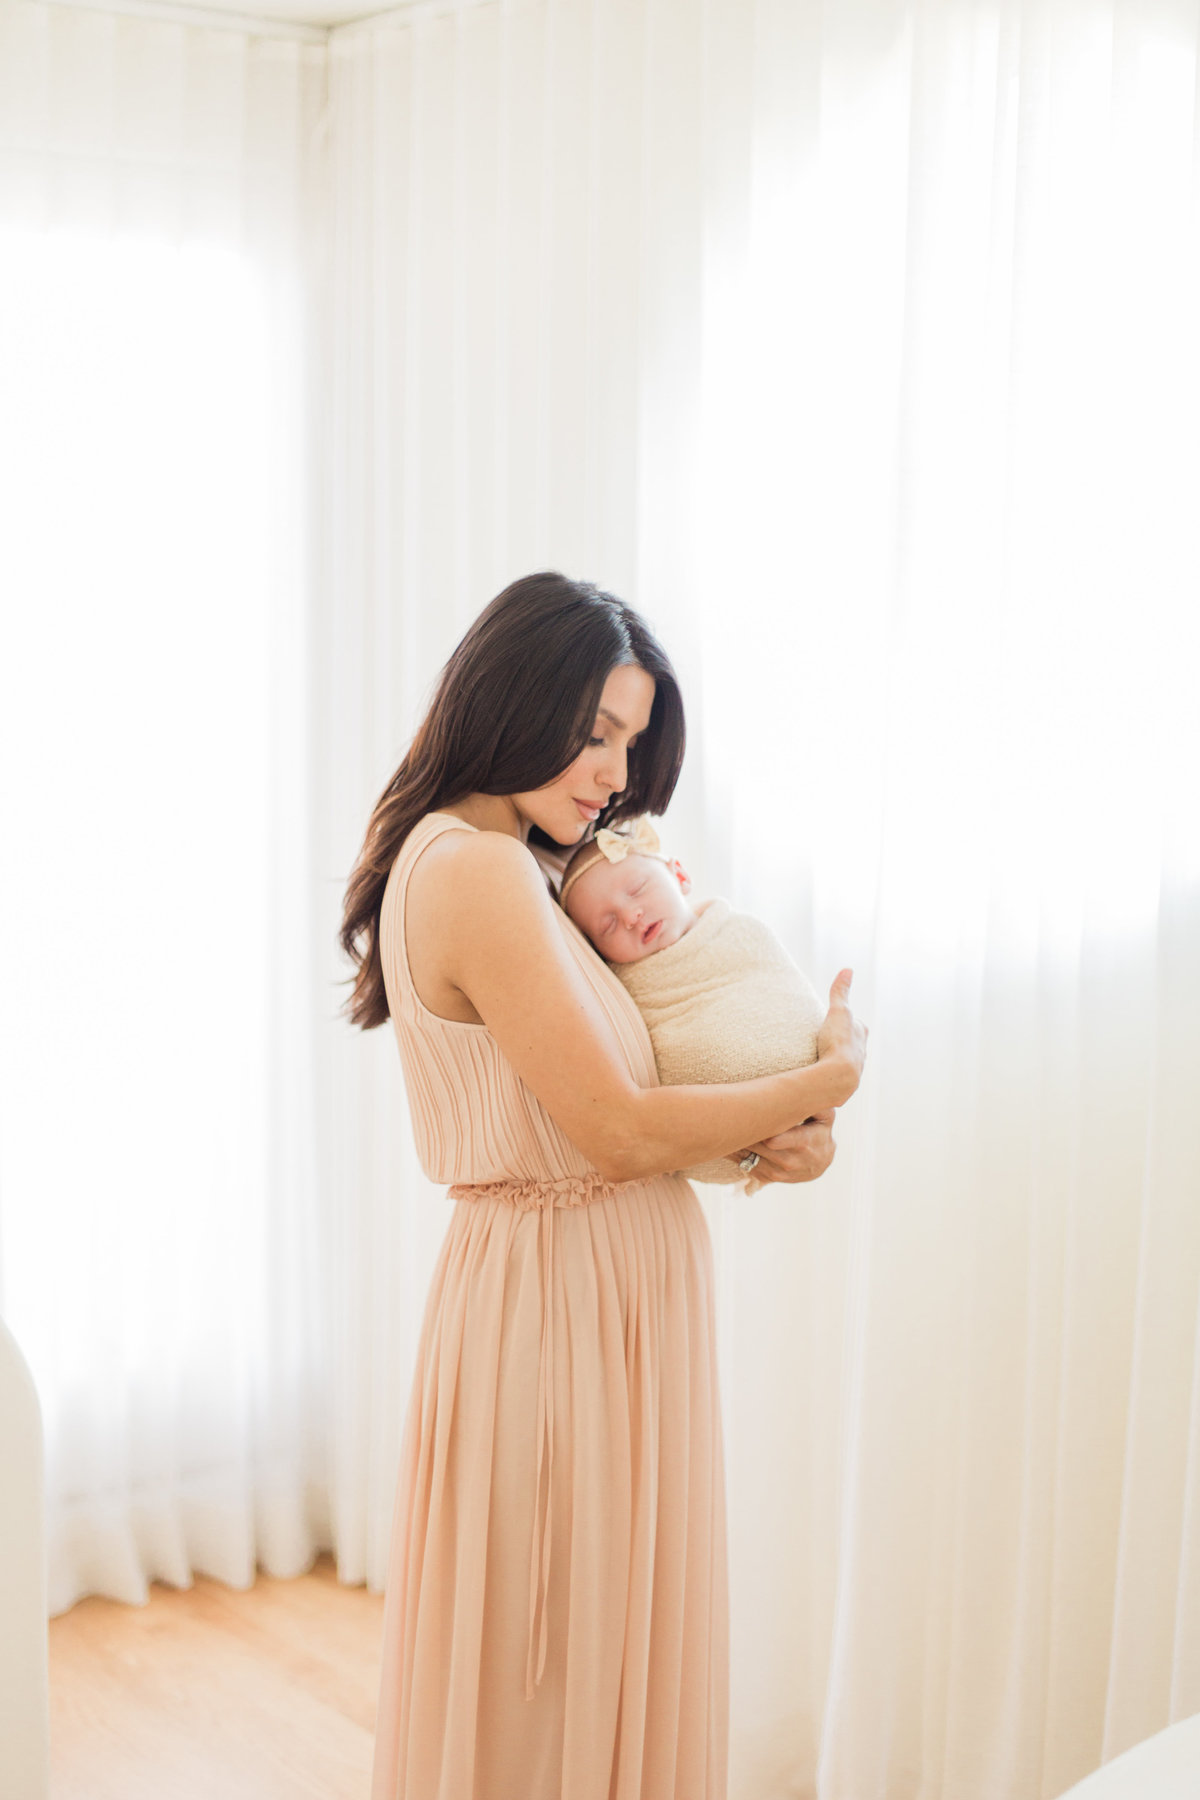 Venice-California-Newborn-Photographer-Brooklyn-39